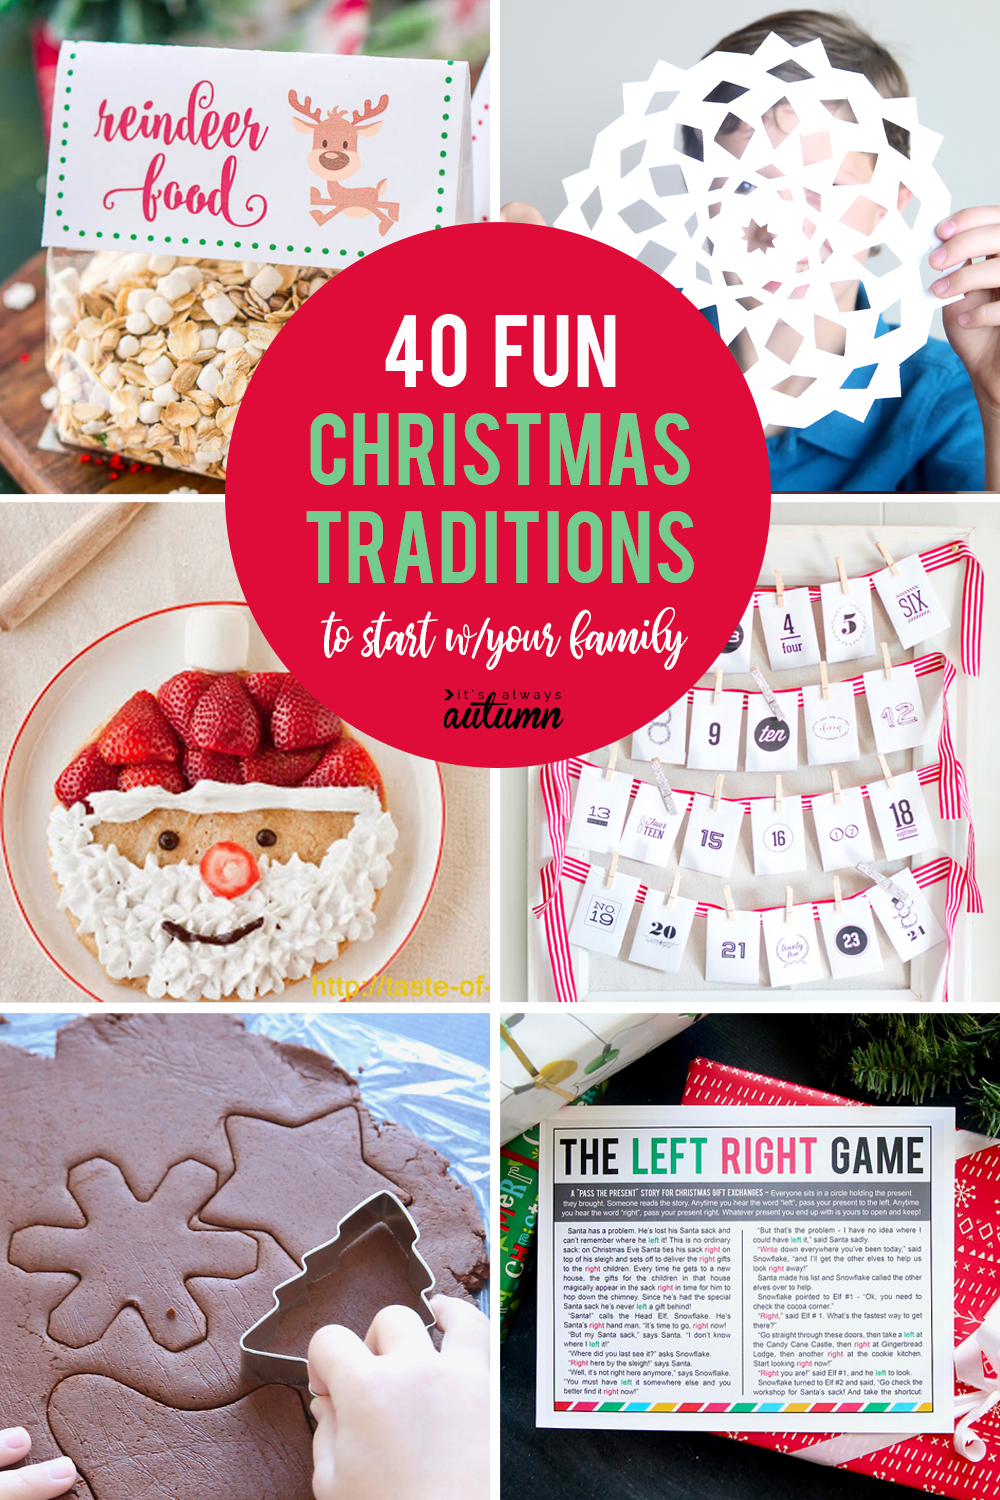 40 fun Christmas traditions to start with your family! Great family tradition ideas.